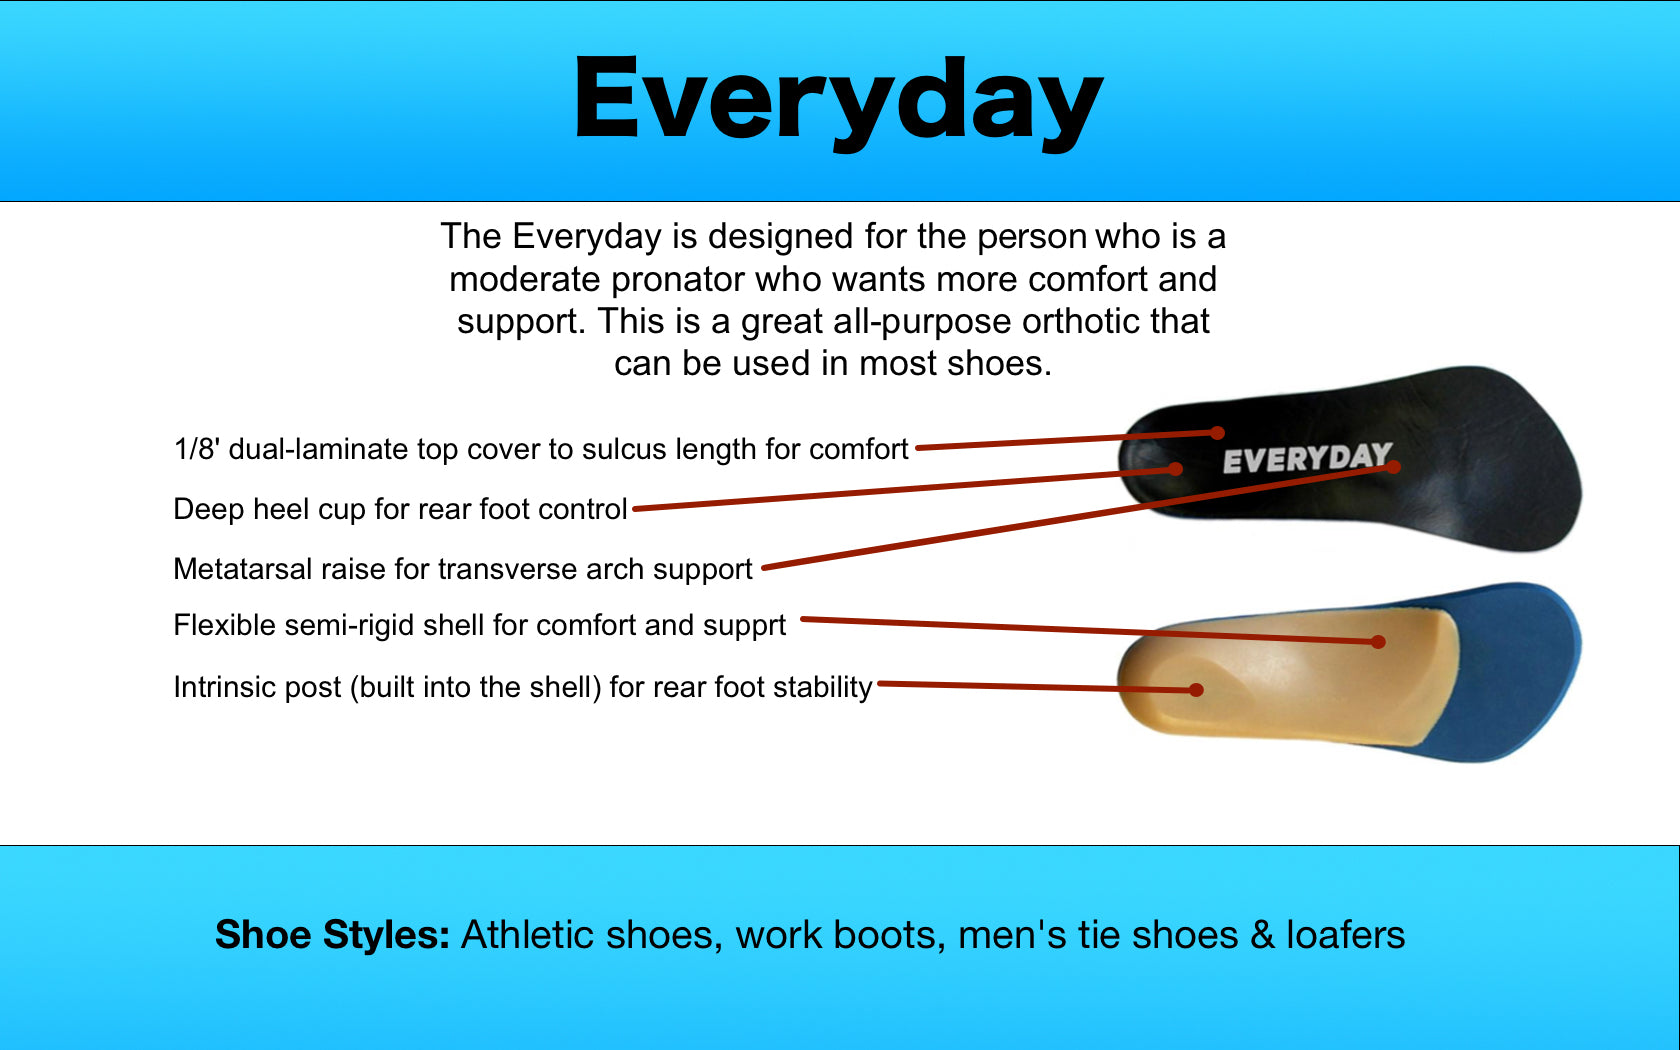 Everyday Orthotic - Thousands Sold!